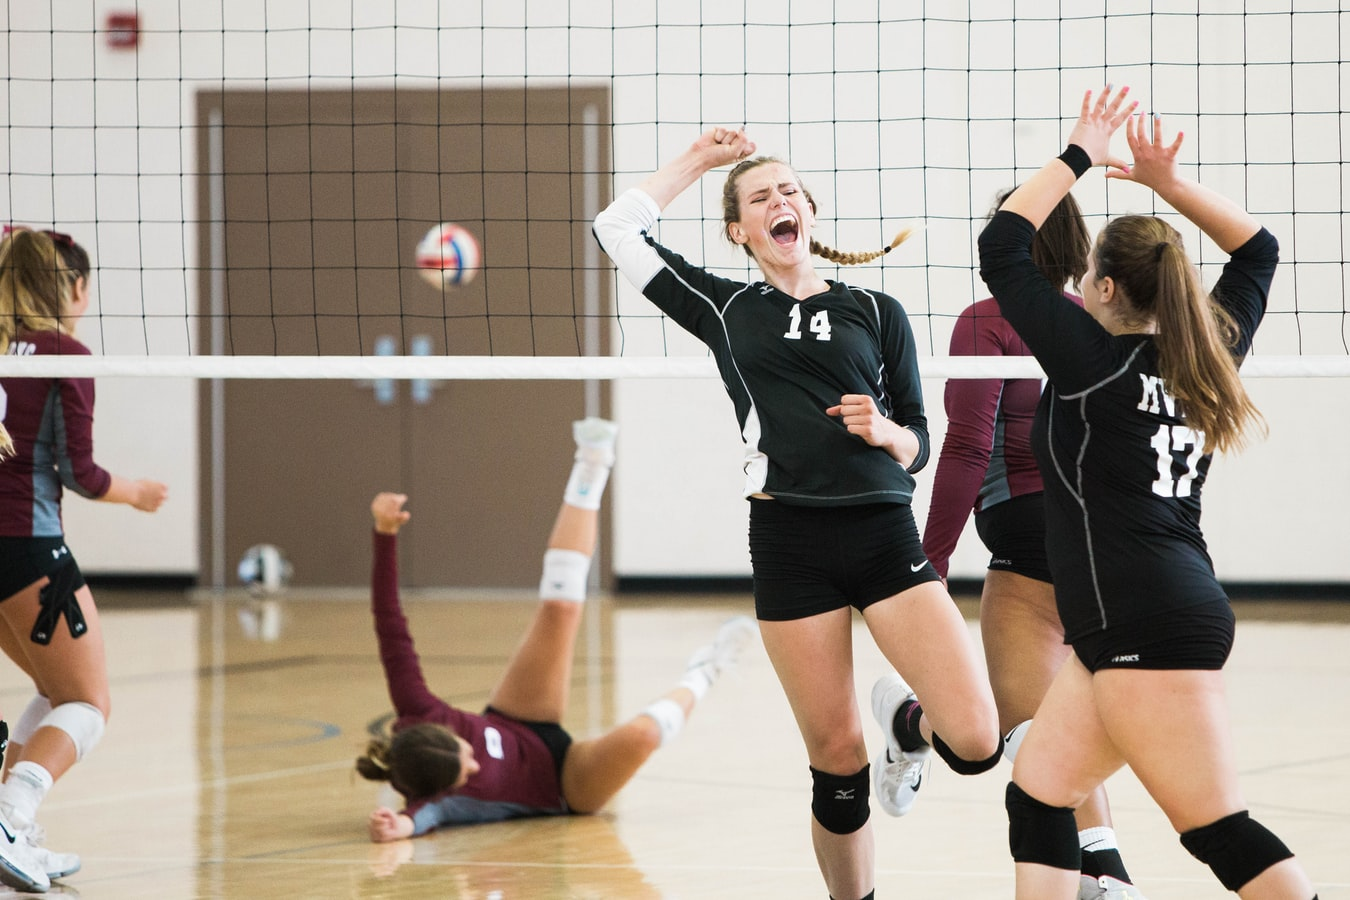 Volleyball players celebrate crushing the opposition